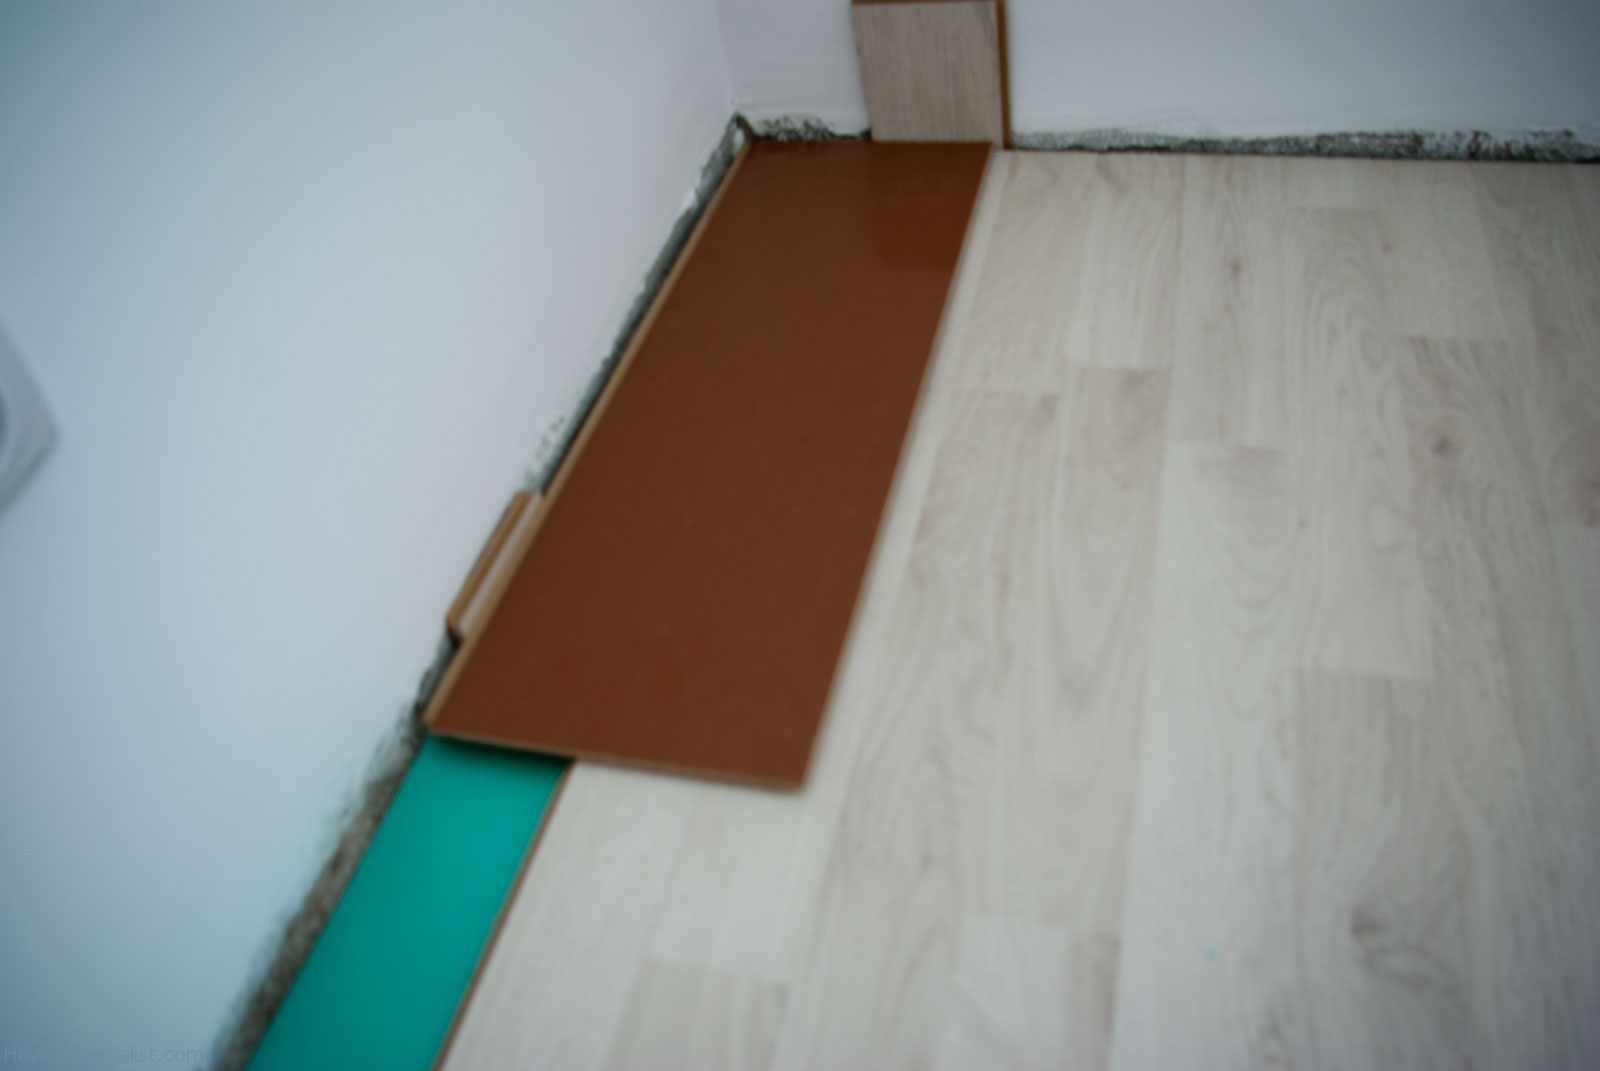 How to lay laminate floor on concrete 28 images how for Laying laminate flooring